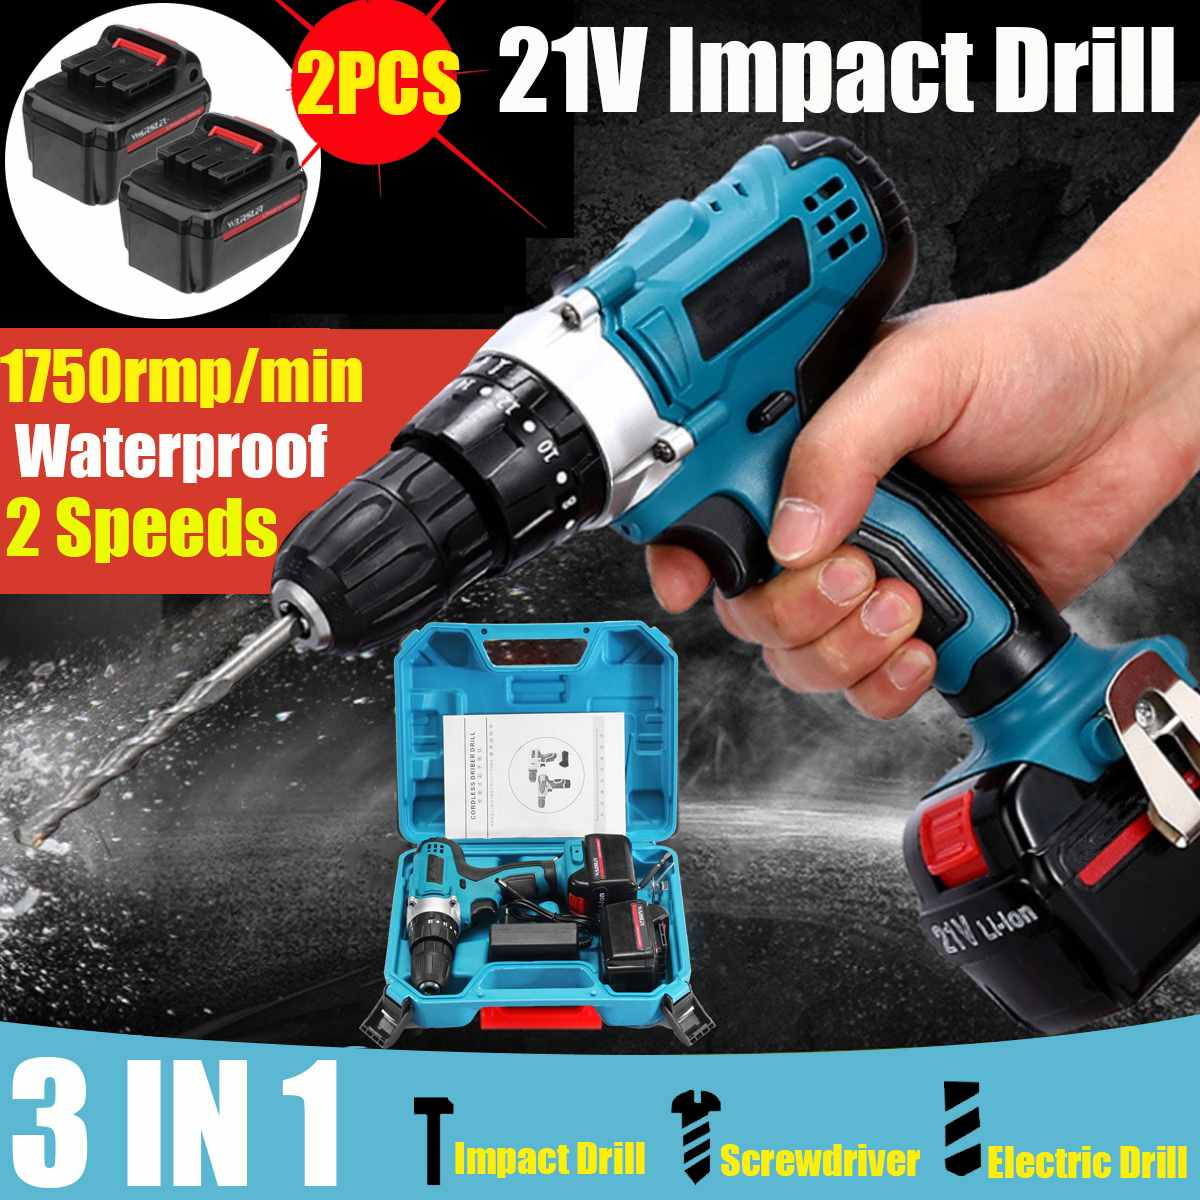 21V Impact Drill Electric Screwdriver Electric Hand Drill Battery Cordless drill Hammer Drill Home Diy Power Tools with box